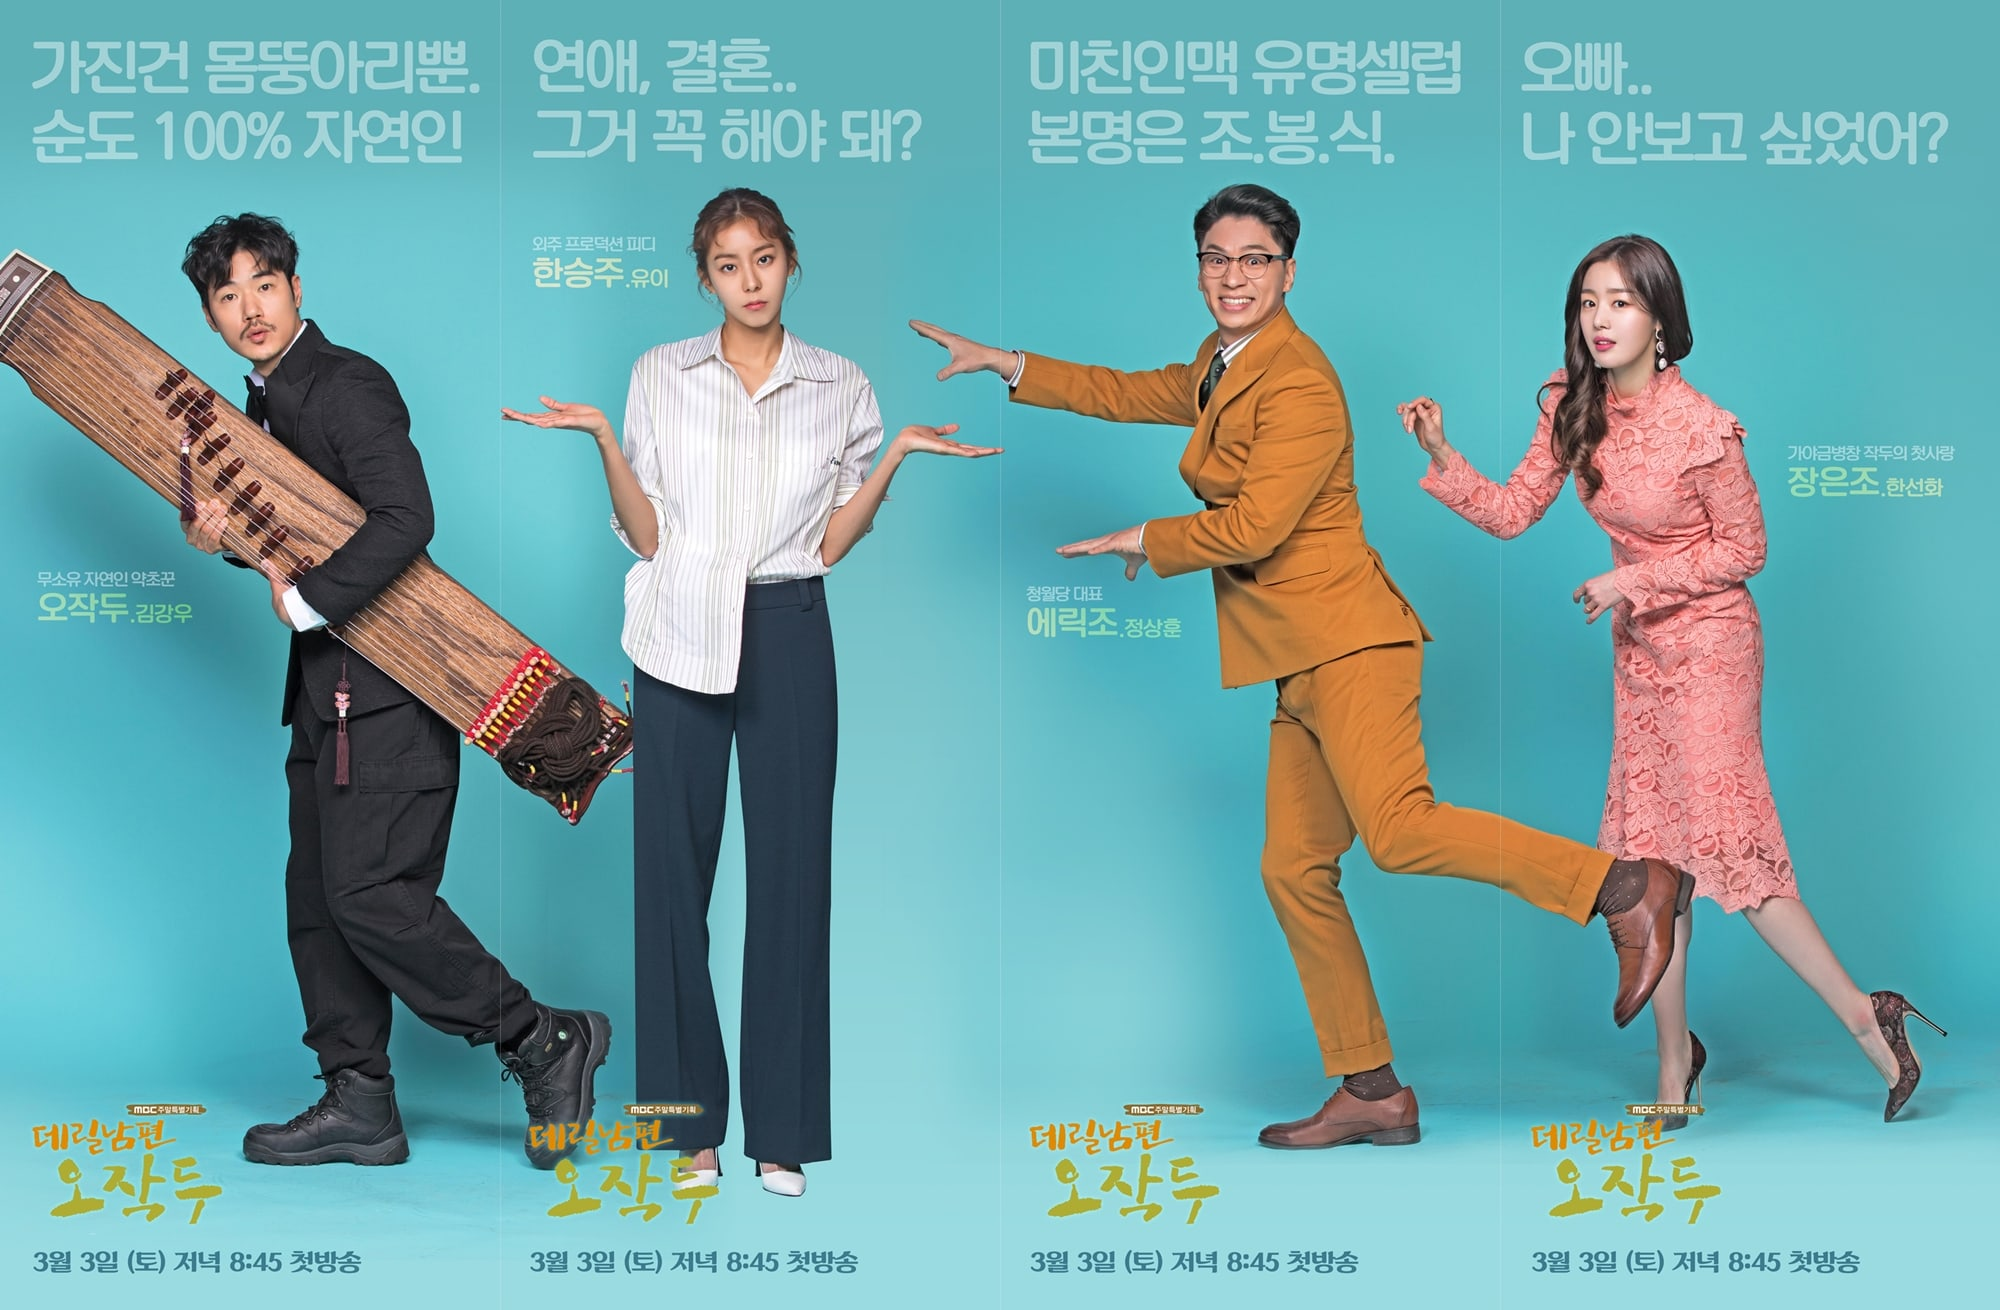 """My Husband, Mr. Oh!"" Reveals Character Posters For Uee, Kim Kang Woo, Jung Sang Hoon, And Han Sun Hwa"